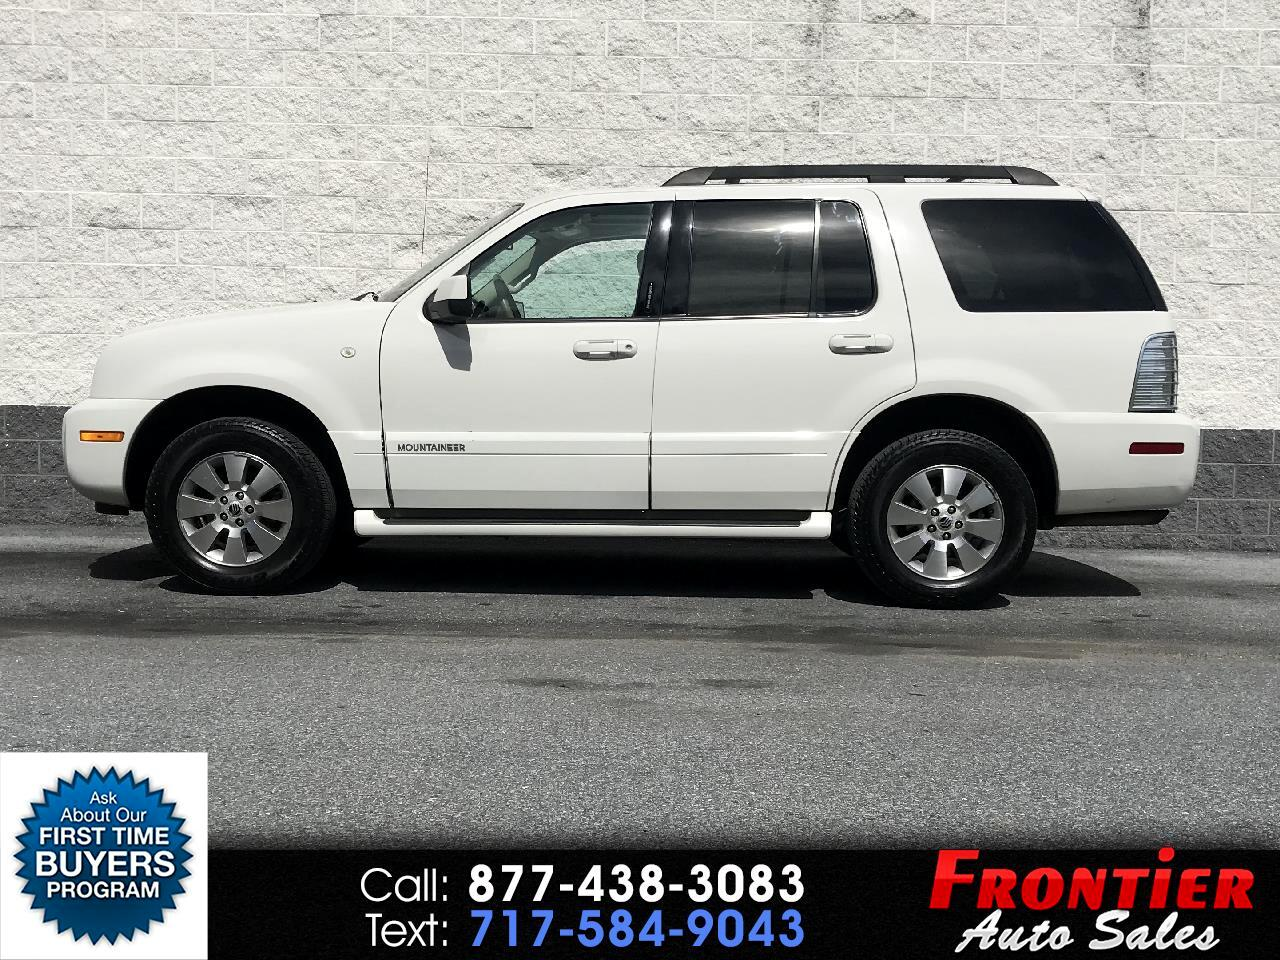 2008 Mercury Mountaineer Premier 4.0L AWD